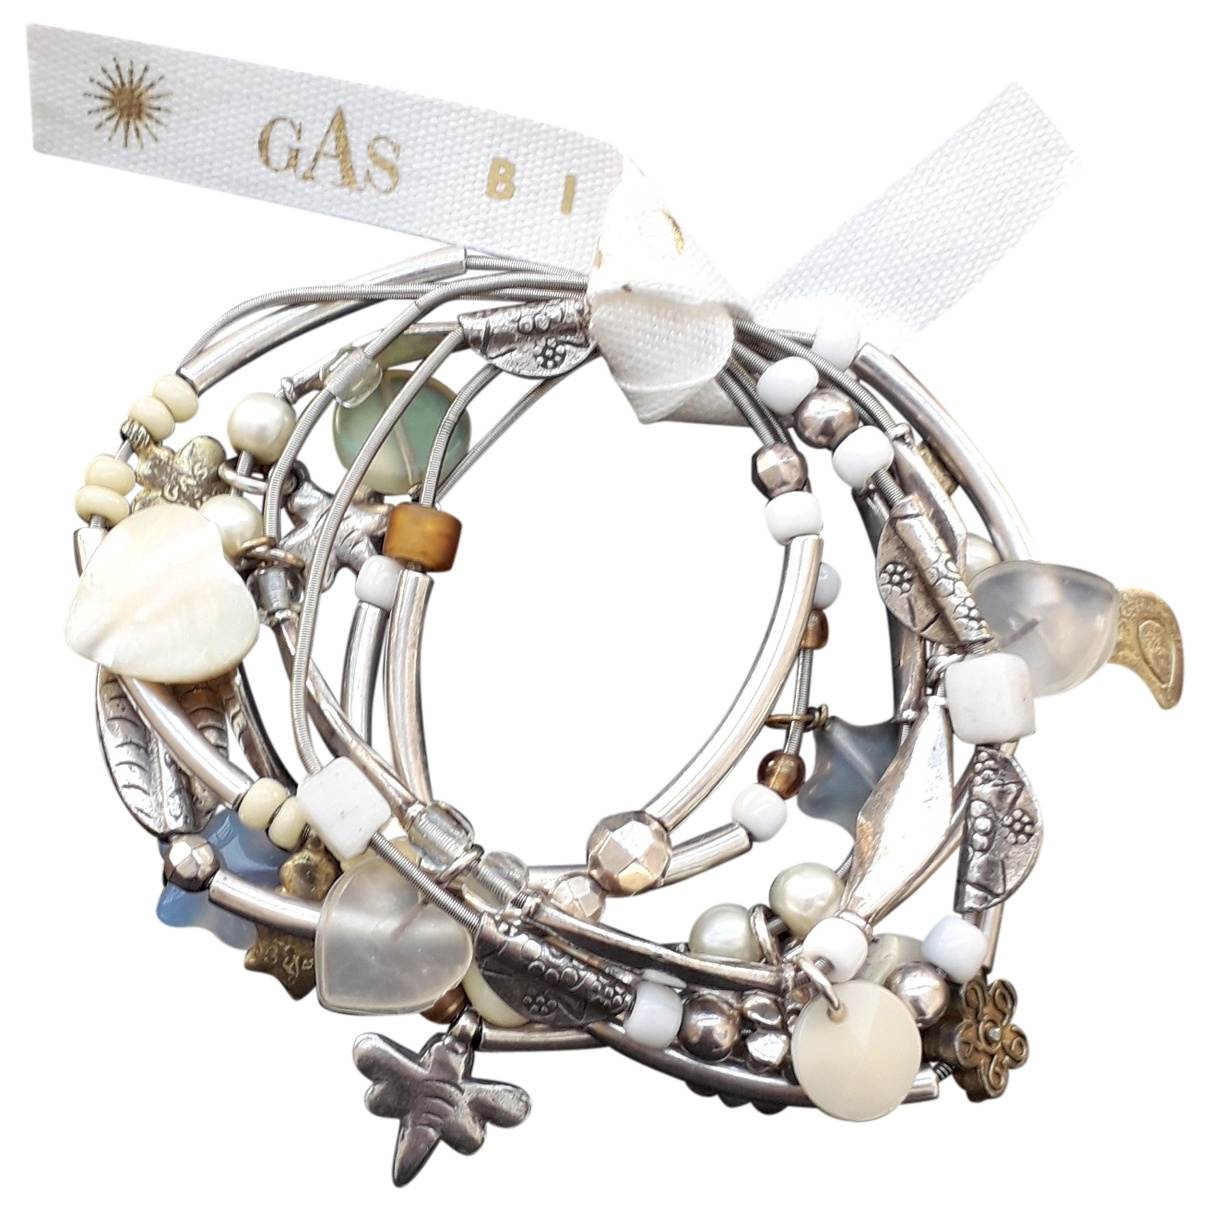 Gas \N Armband in  Weiss Metall